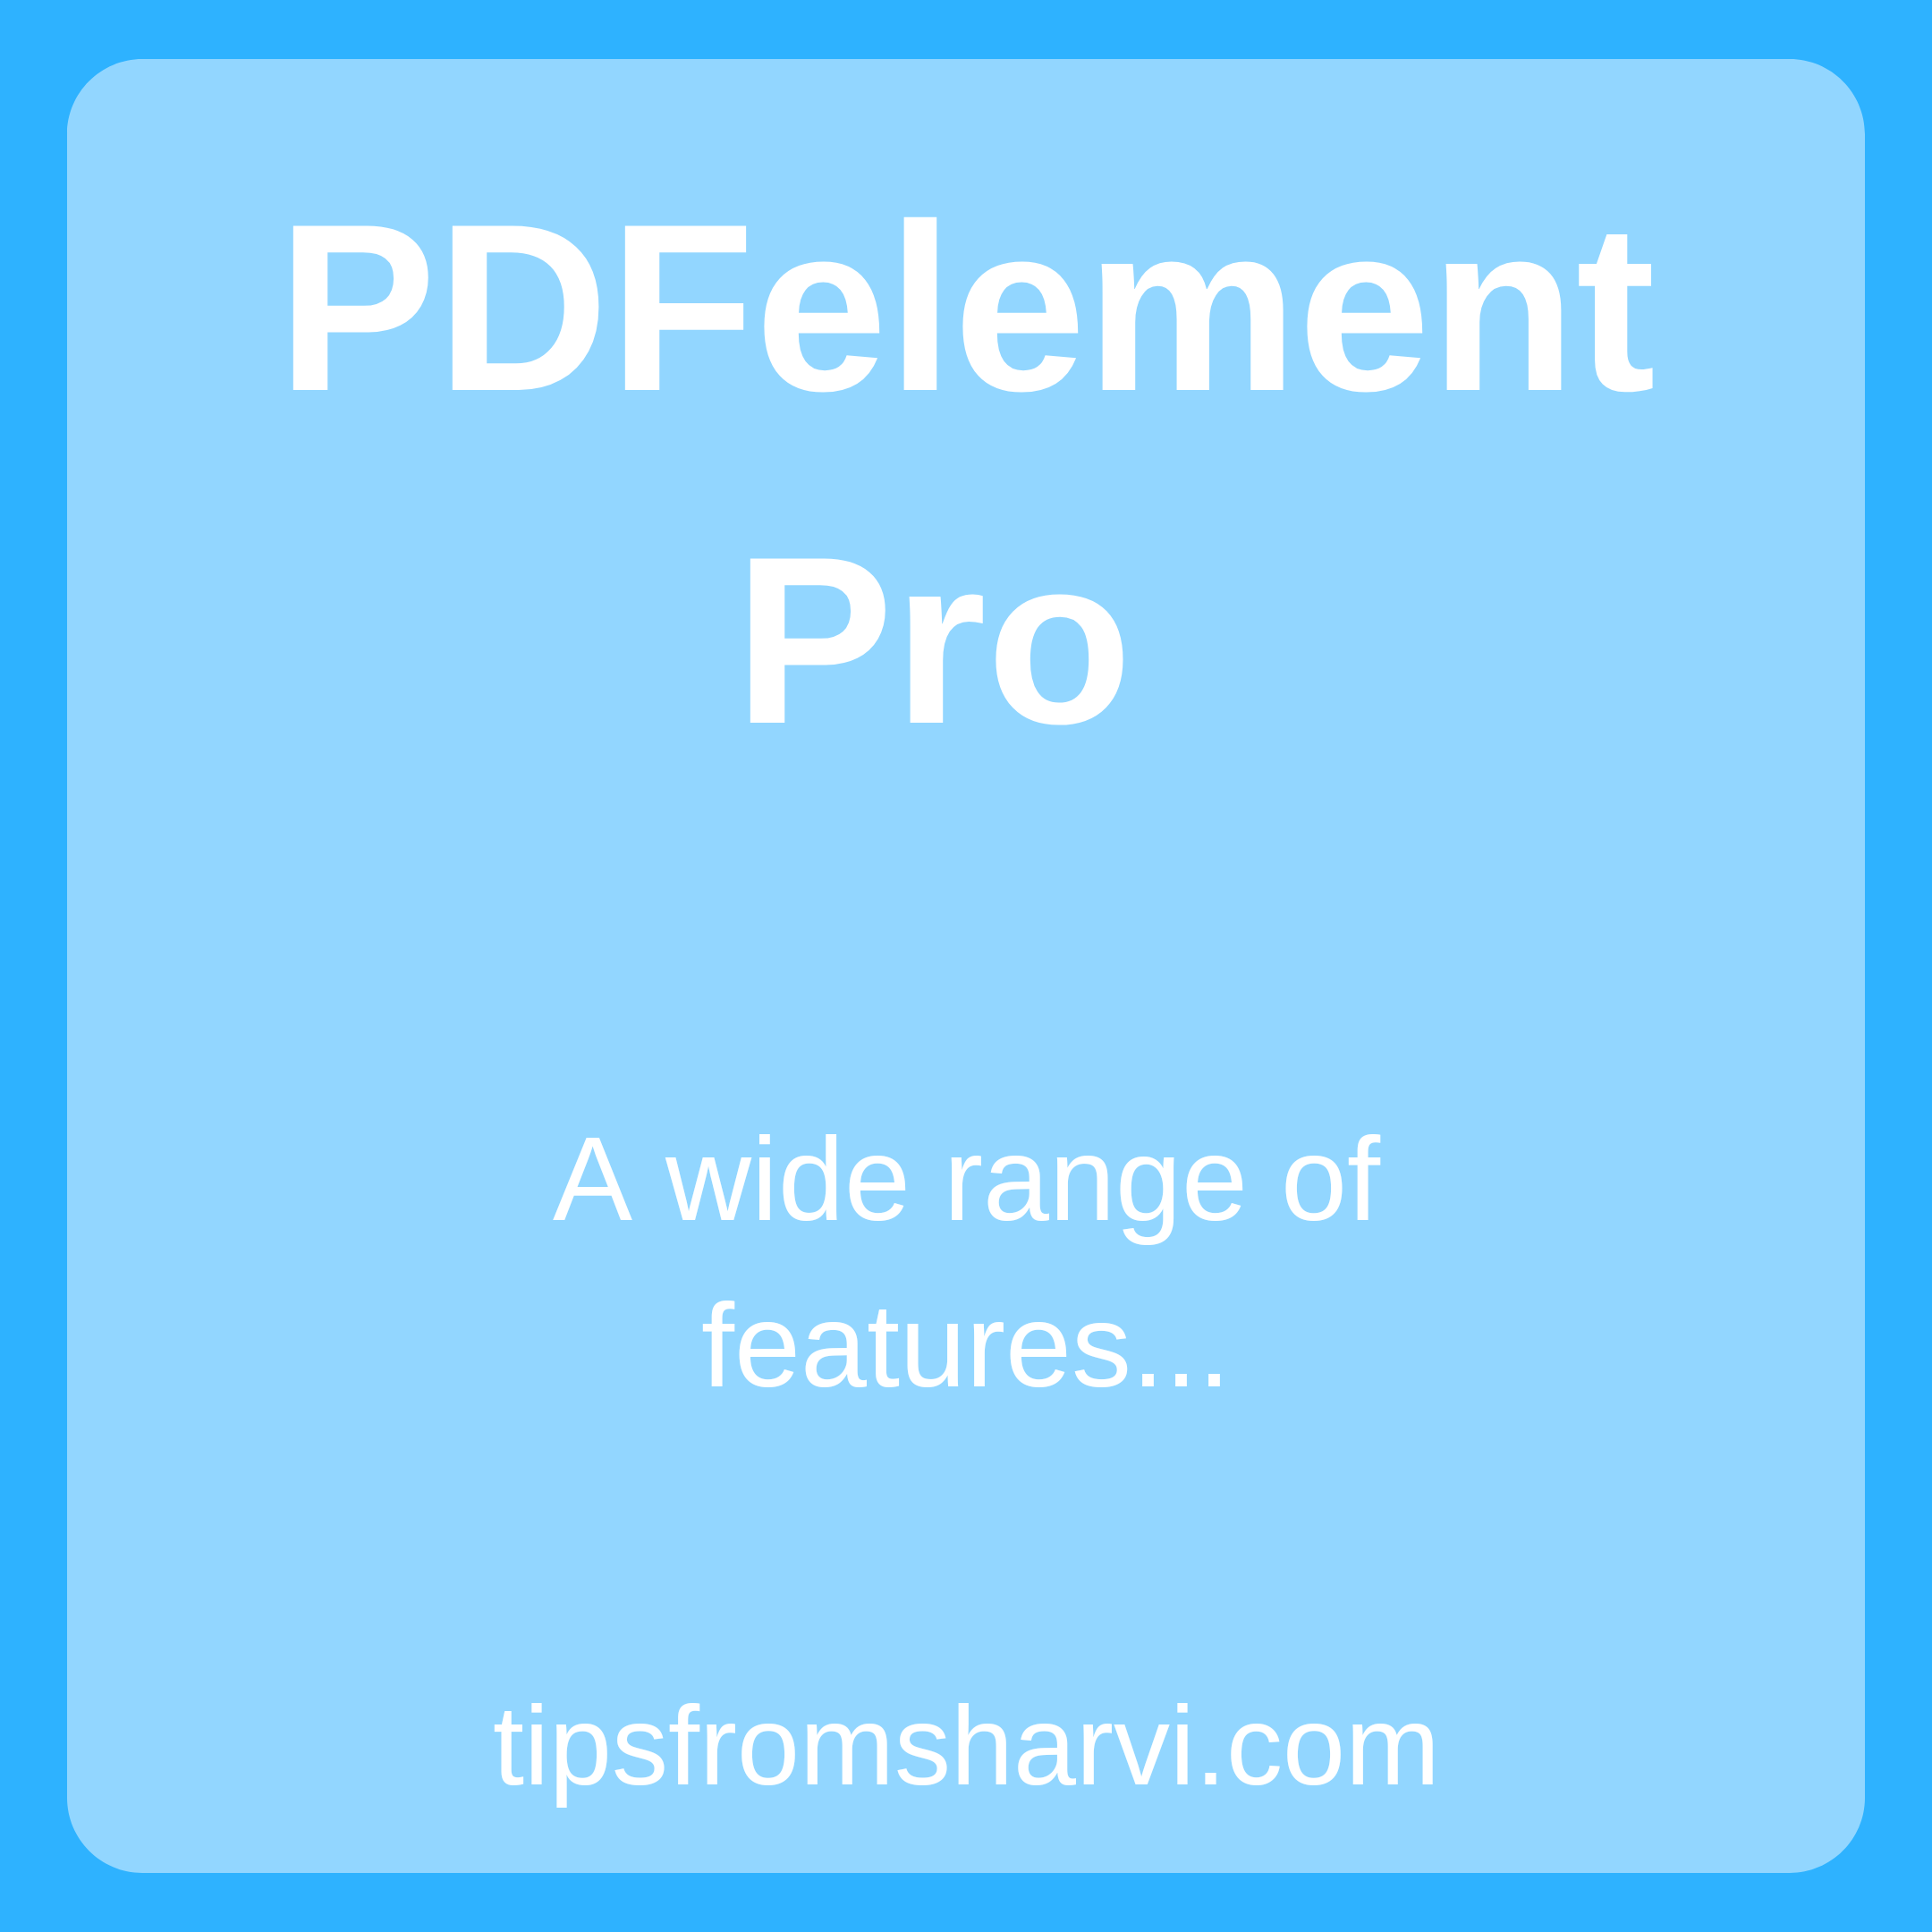 PDFelement Pro product review, Tips from Sharvi.